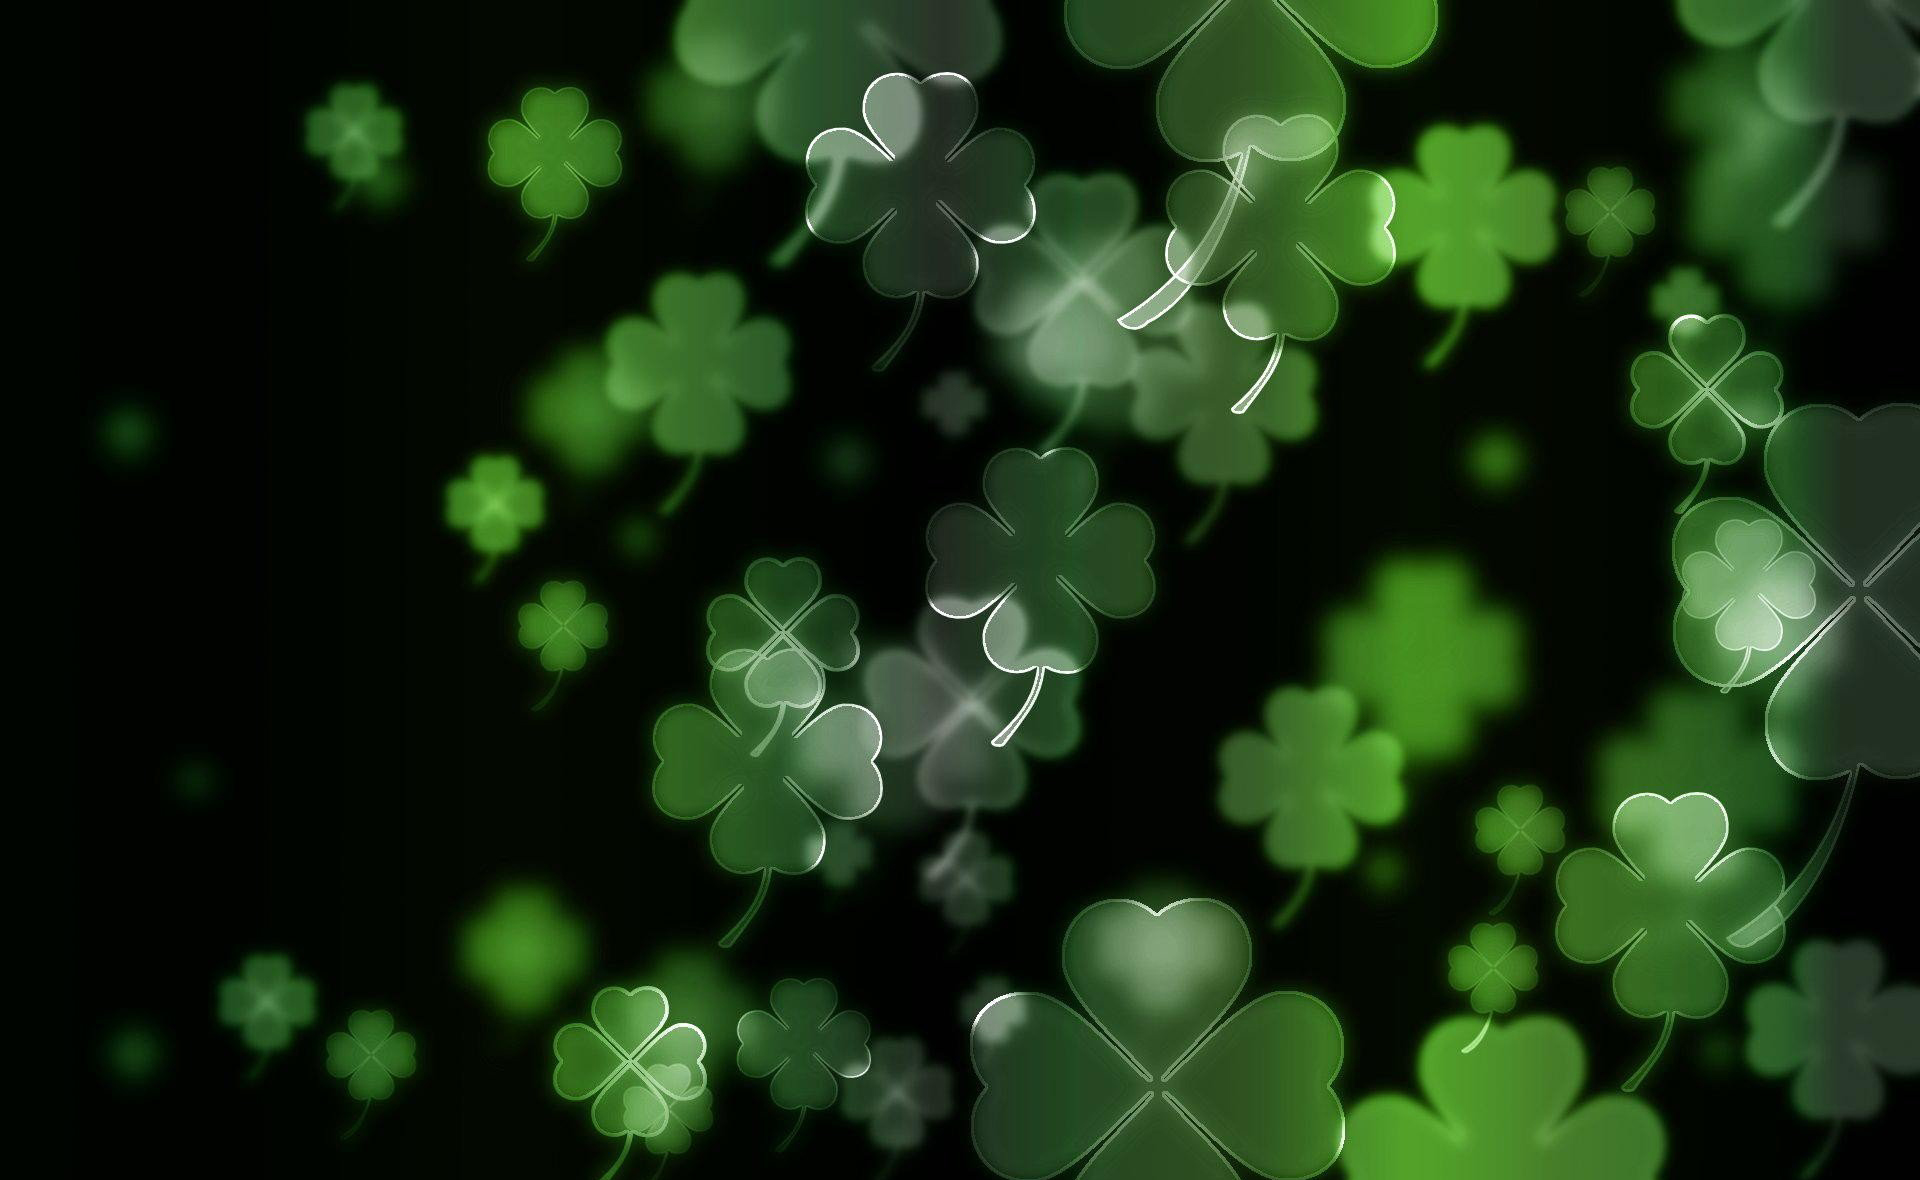 Download Four Leaf Clover Wallpapers HD 1920x1180